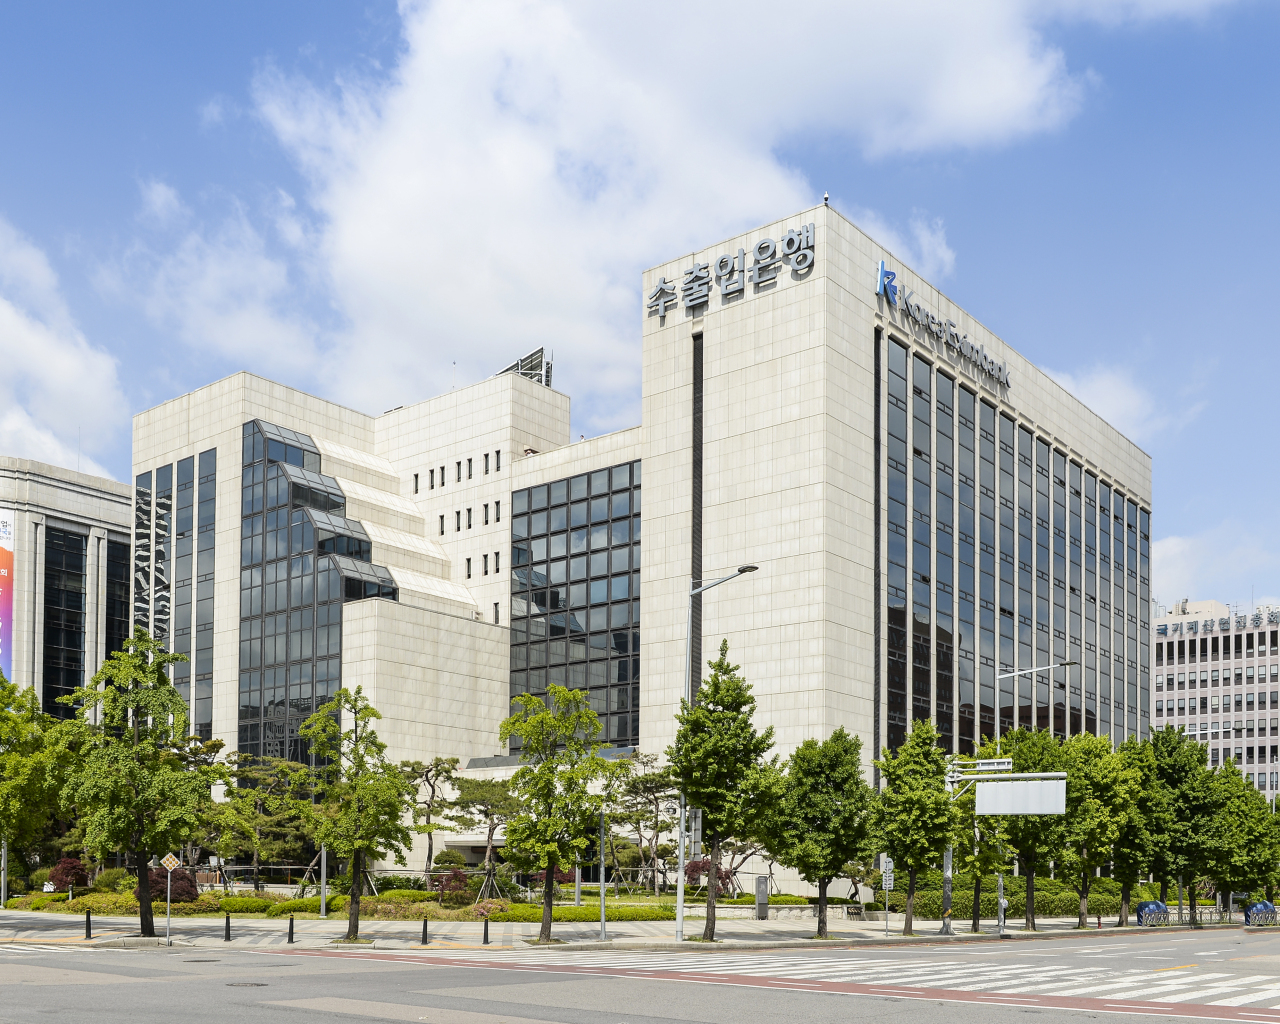 The Export-Import Bank of Korea headquarters in Seoul. (Eximbank)